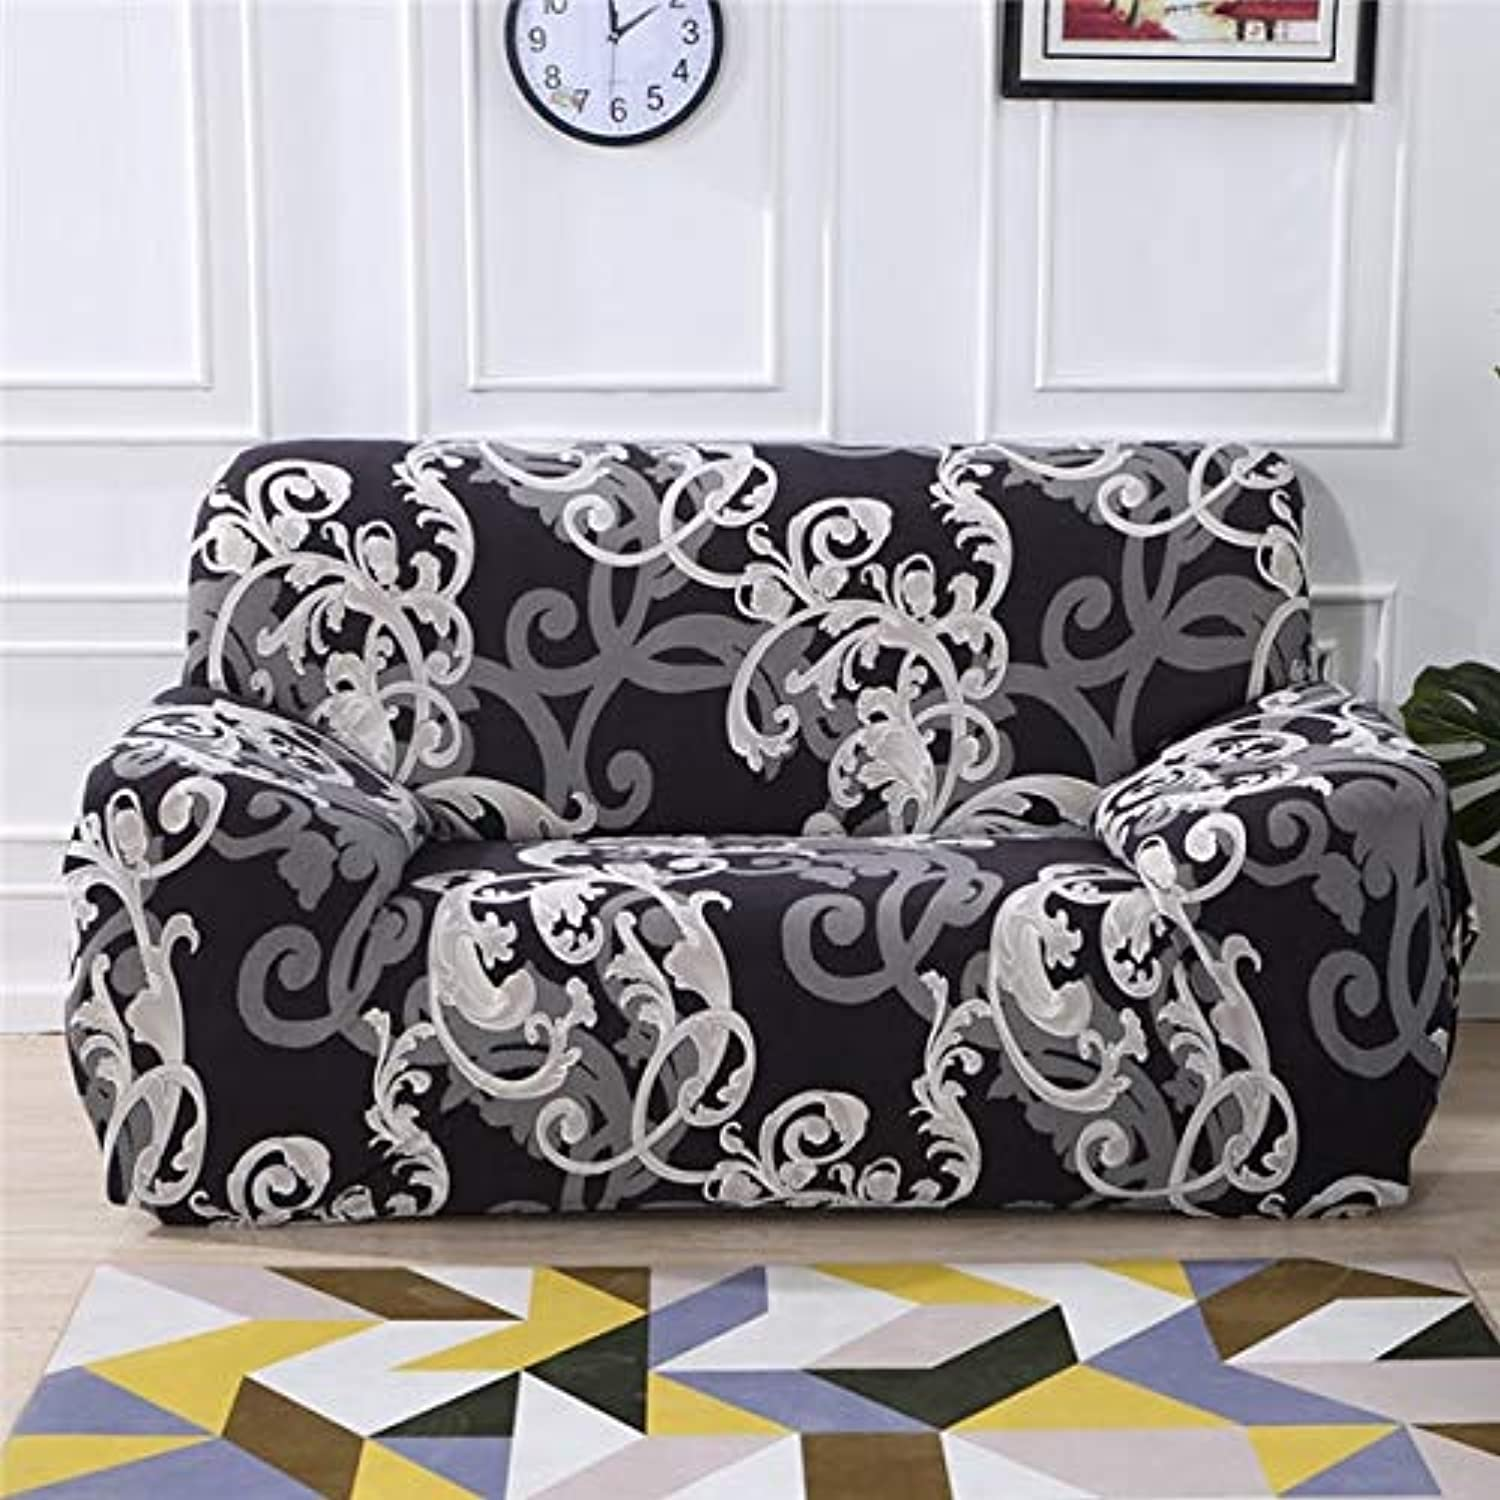 Monstera Elastic All-Inclusive Slipcovers Corner Sofa Covers Sectional Sofa Cover Spandex Stretch Predective Couch Cover   16, Single Seater